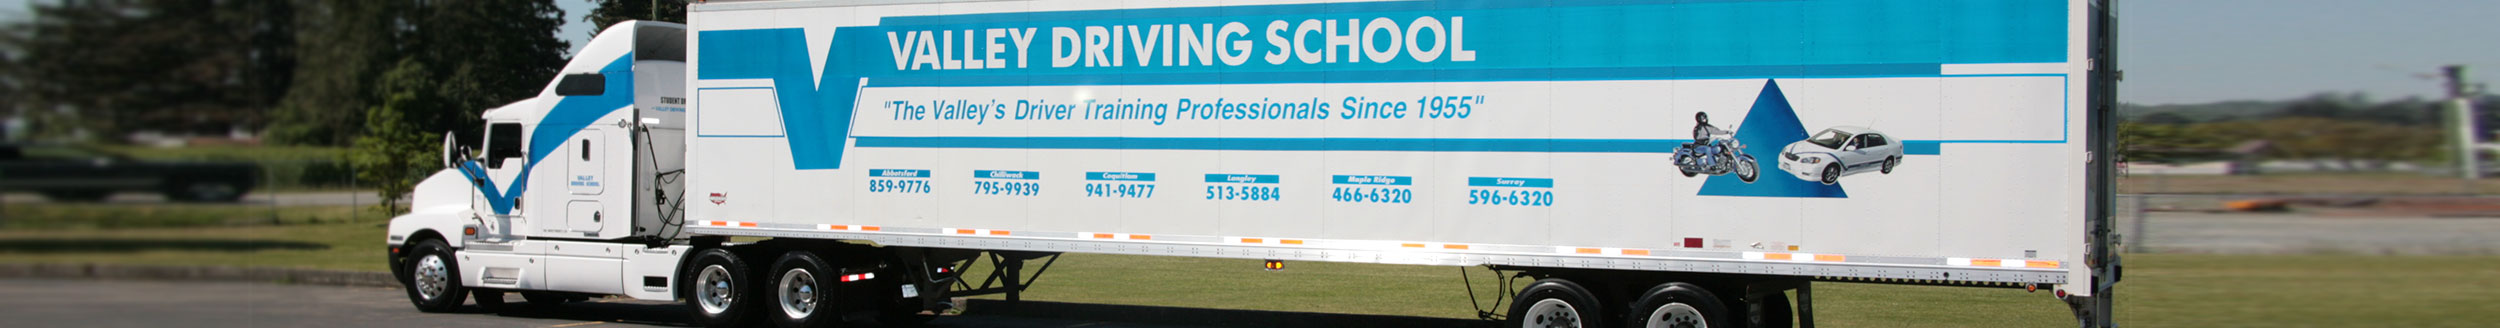 Air brake course test preparation from valley driving school